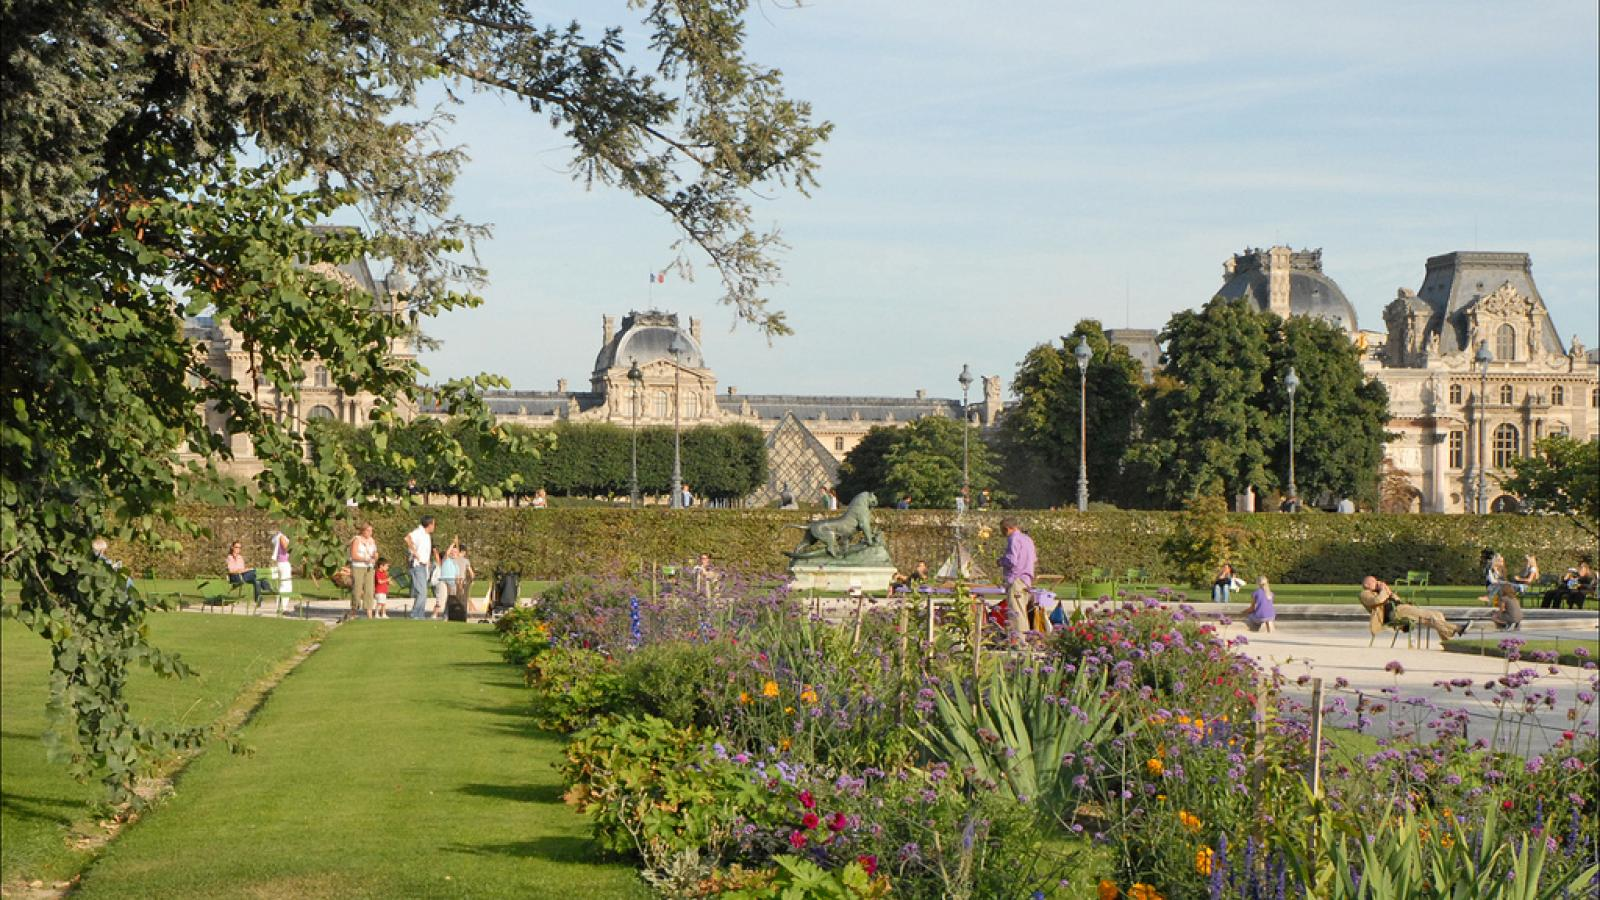 A day at the Tuileries Garden